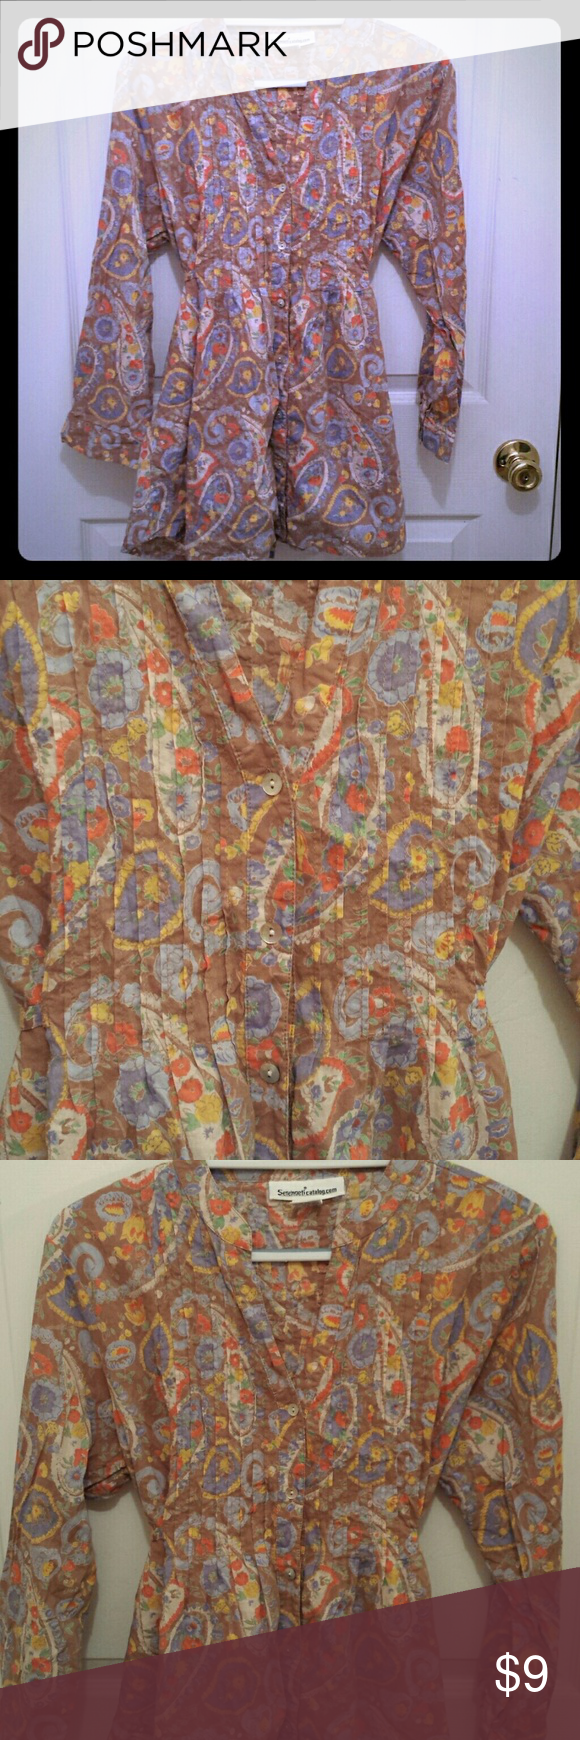 Light brown paisley tunic Very light brown/taupe tunic with a paisley print. Button front and ties in the back. Size large, excellent condition. serengetic Tops Tunics